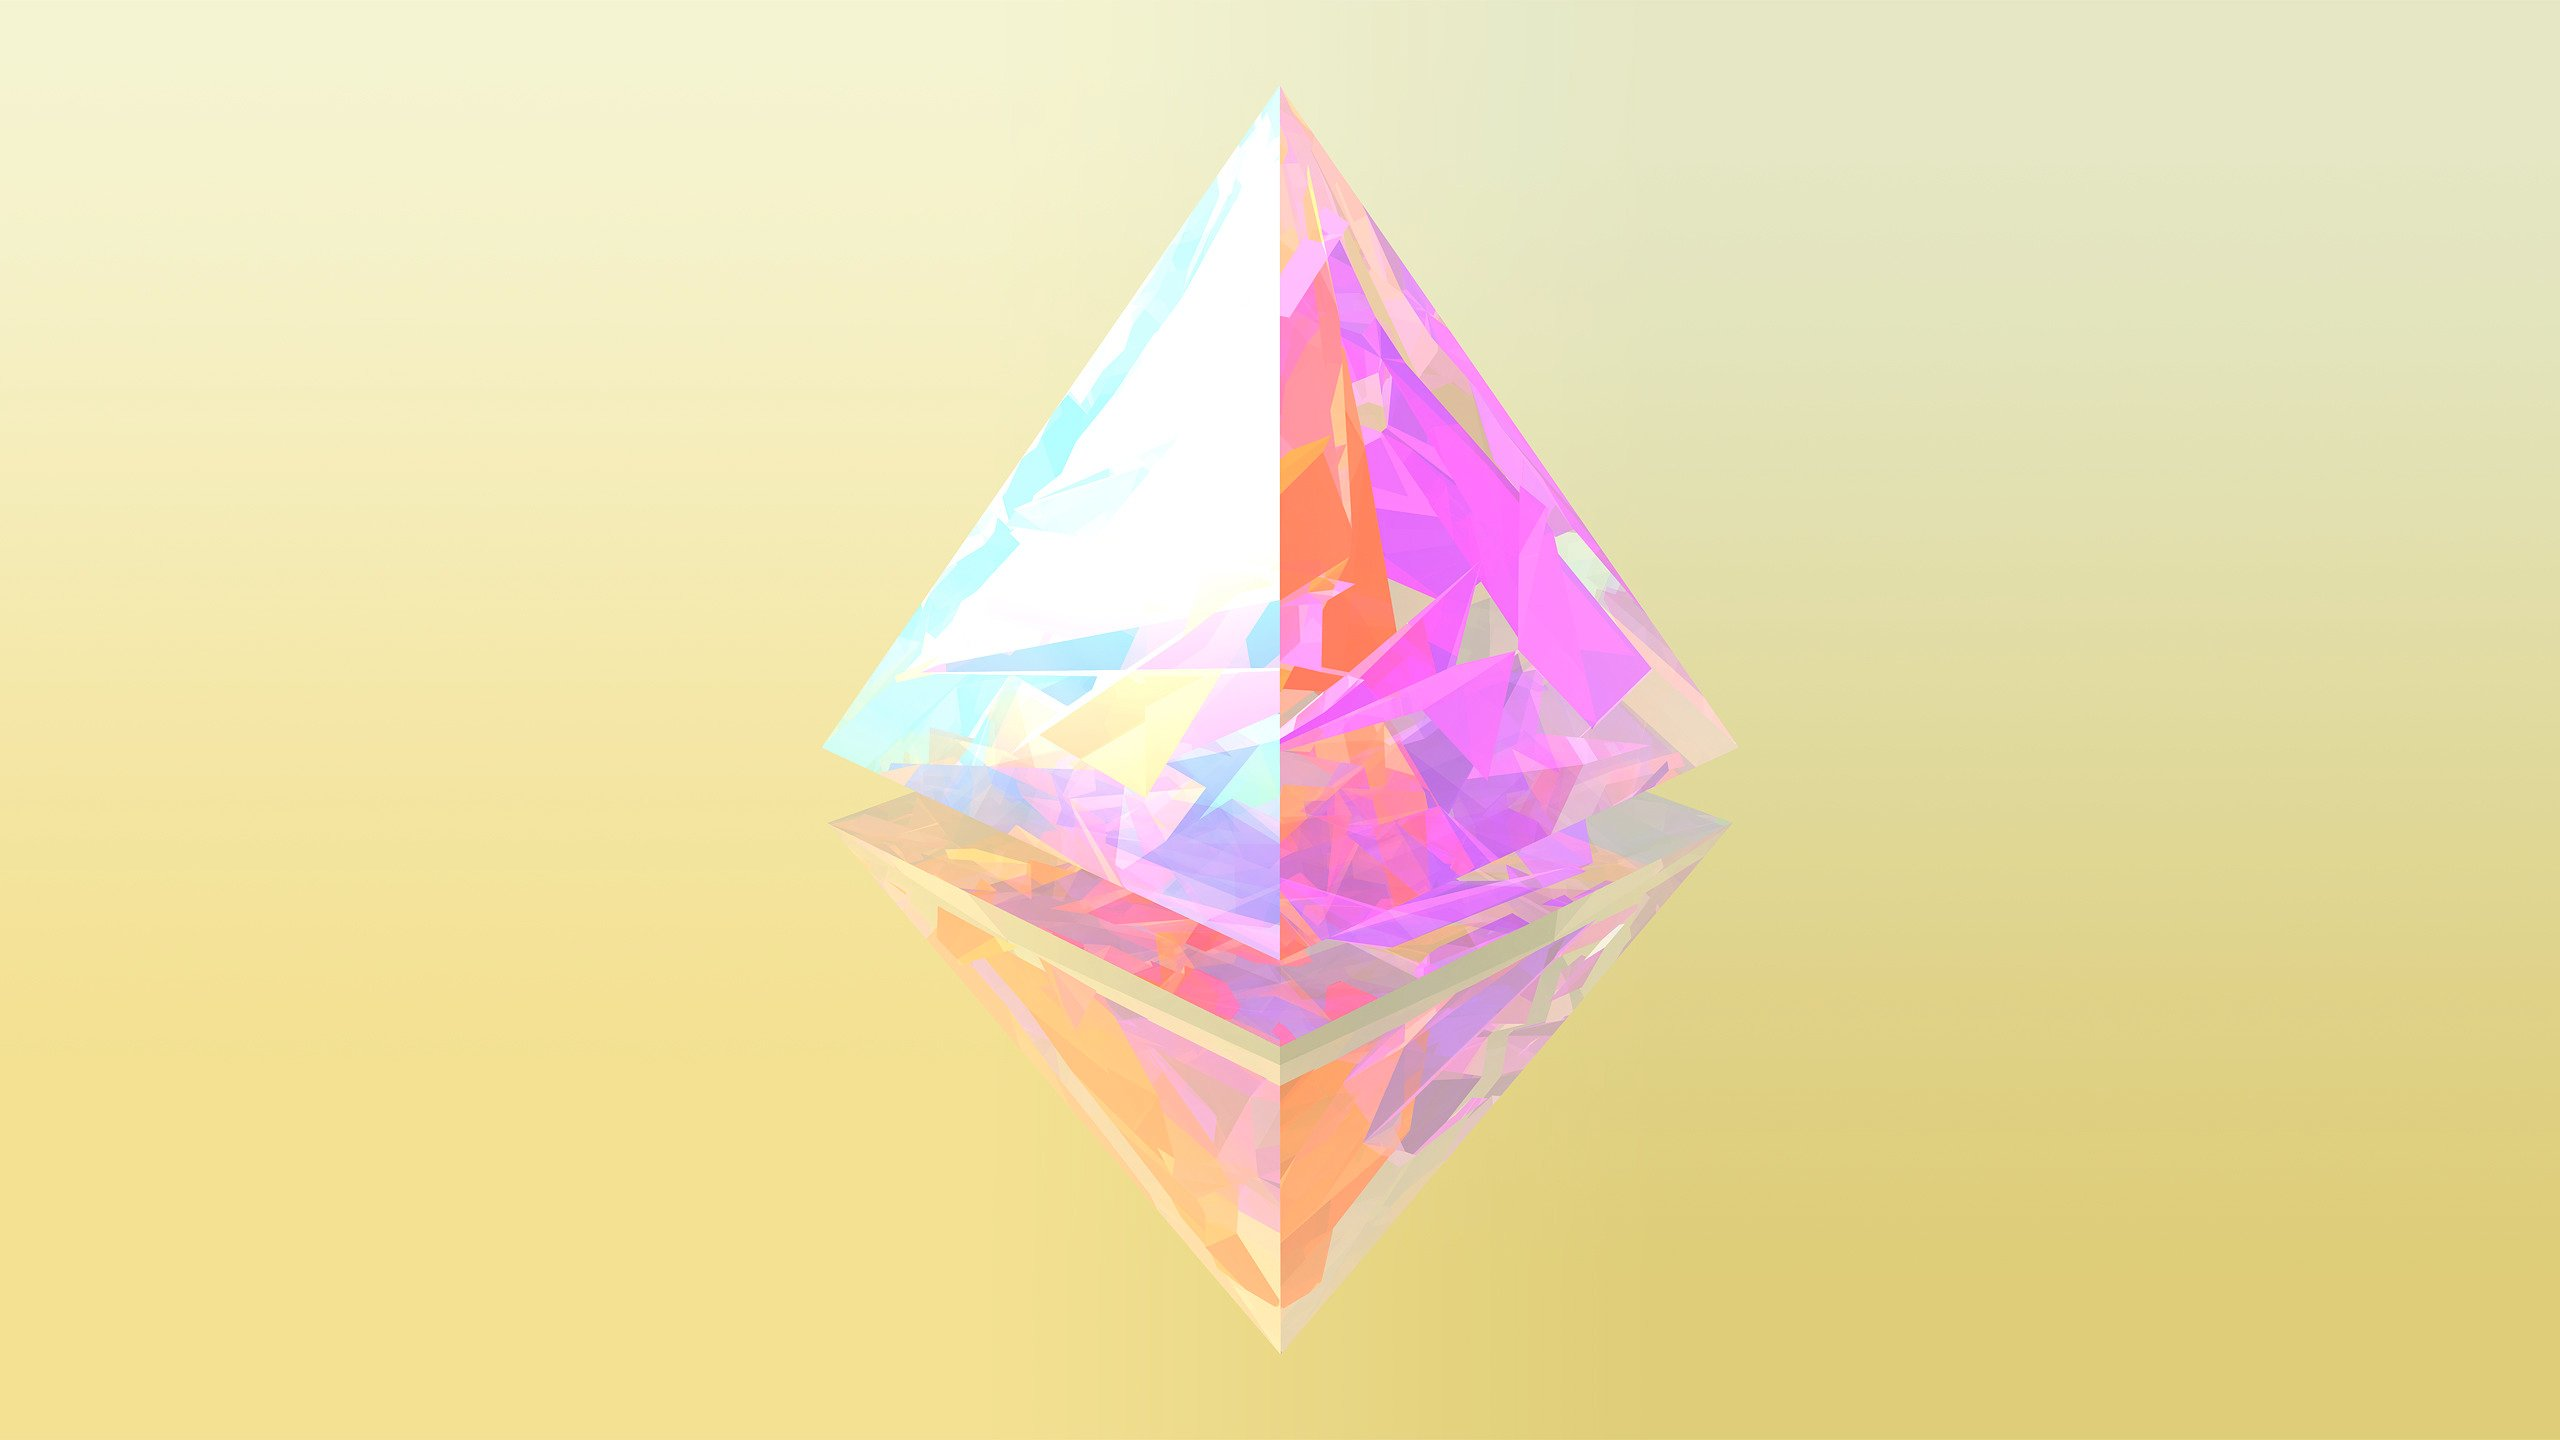 Found a great wallpaper if any one is interested ethereum 2560x1440